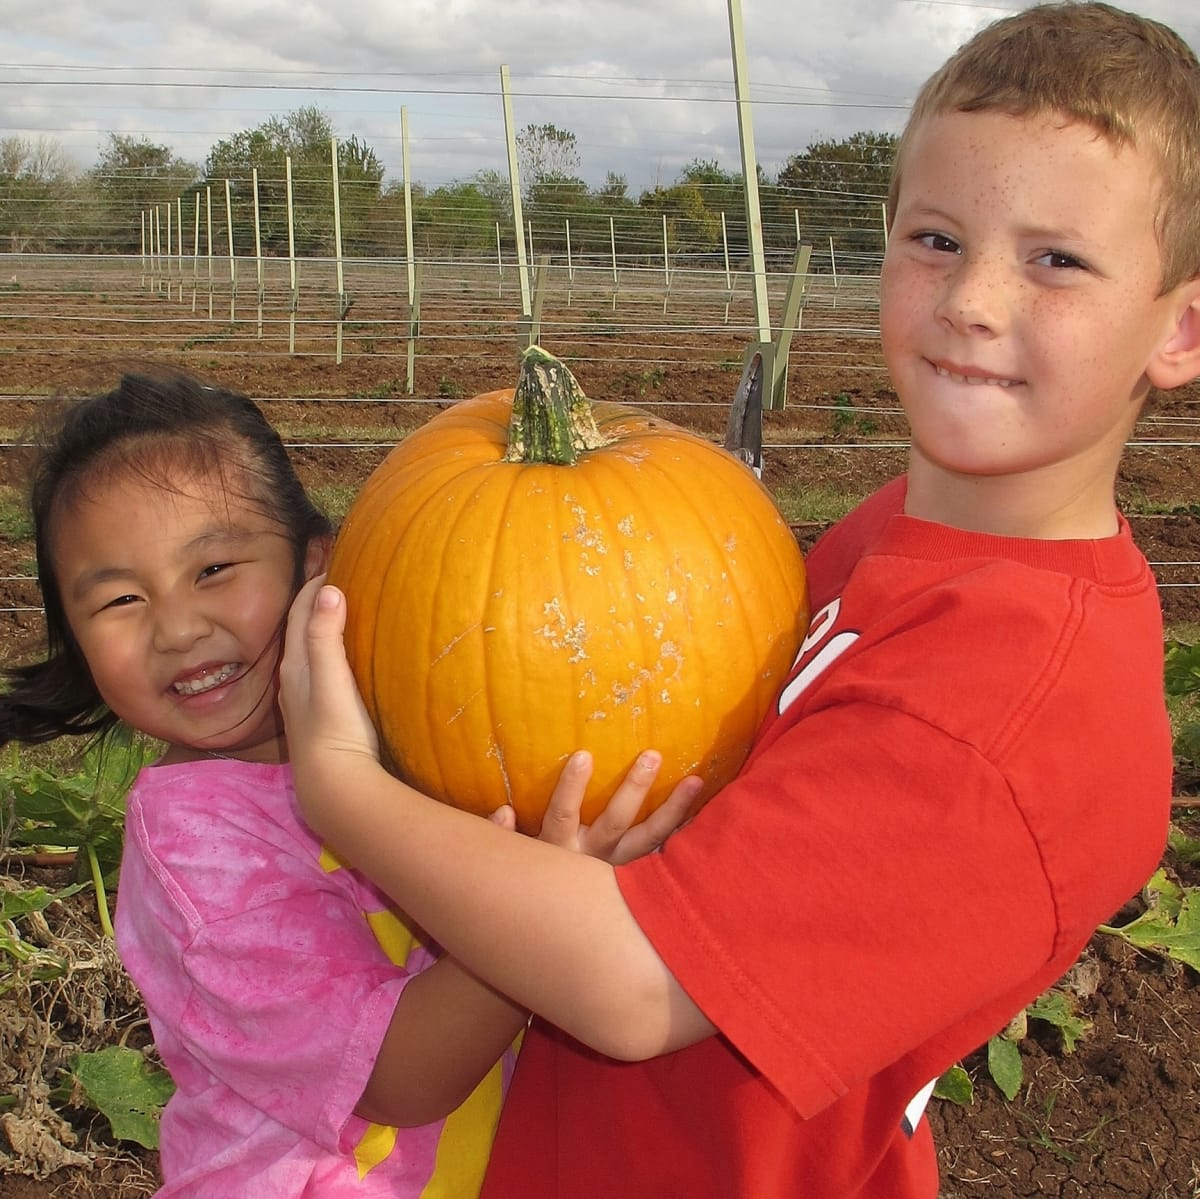 Fall Festival and Pumpkin Patch at Blessington Farms